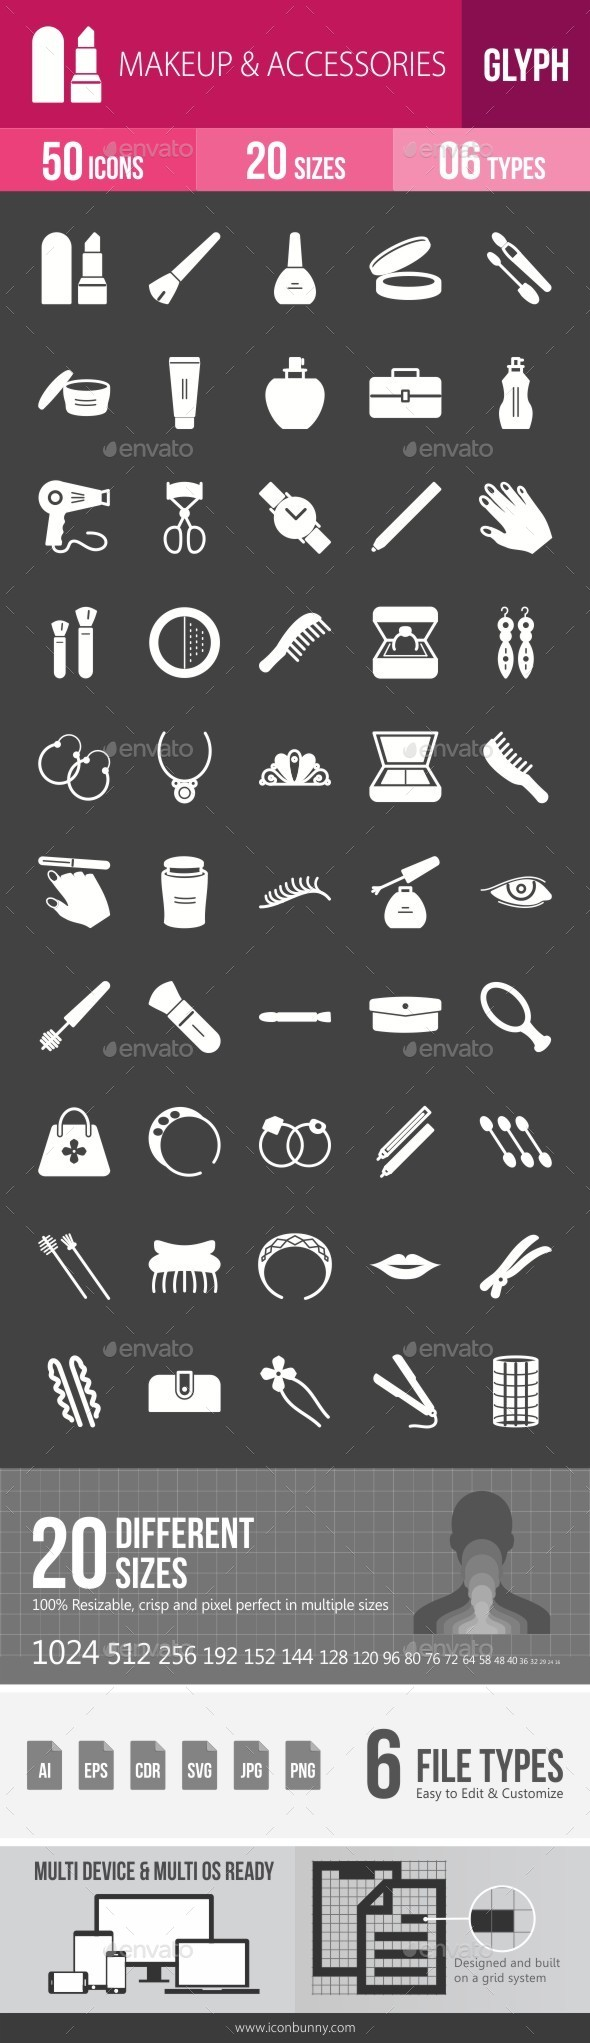 Makeup & Accessories Glyph Inverted Icons - Icons